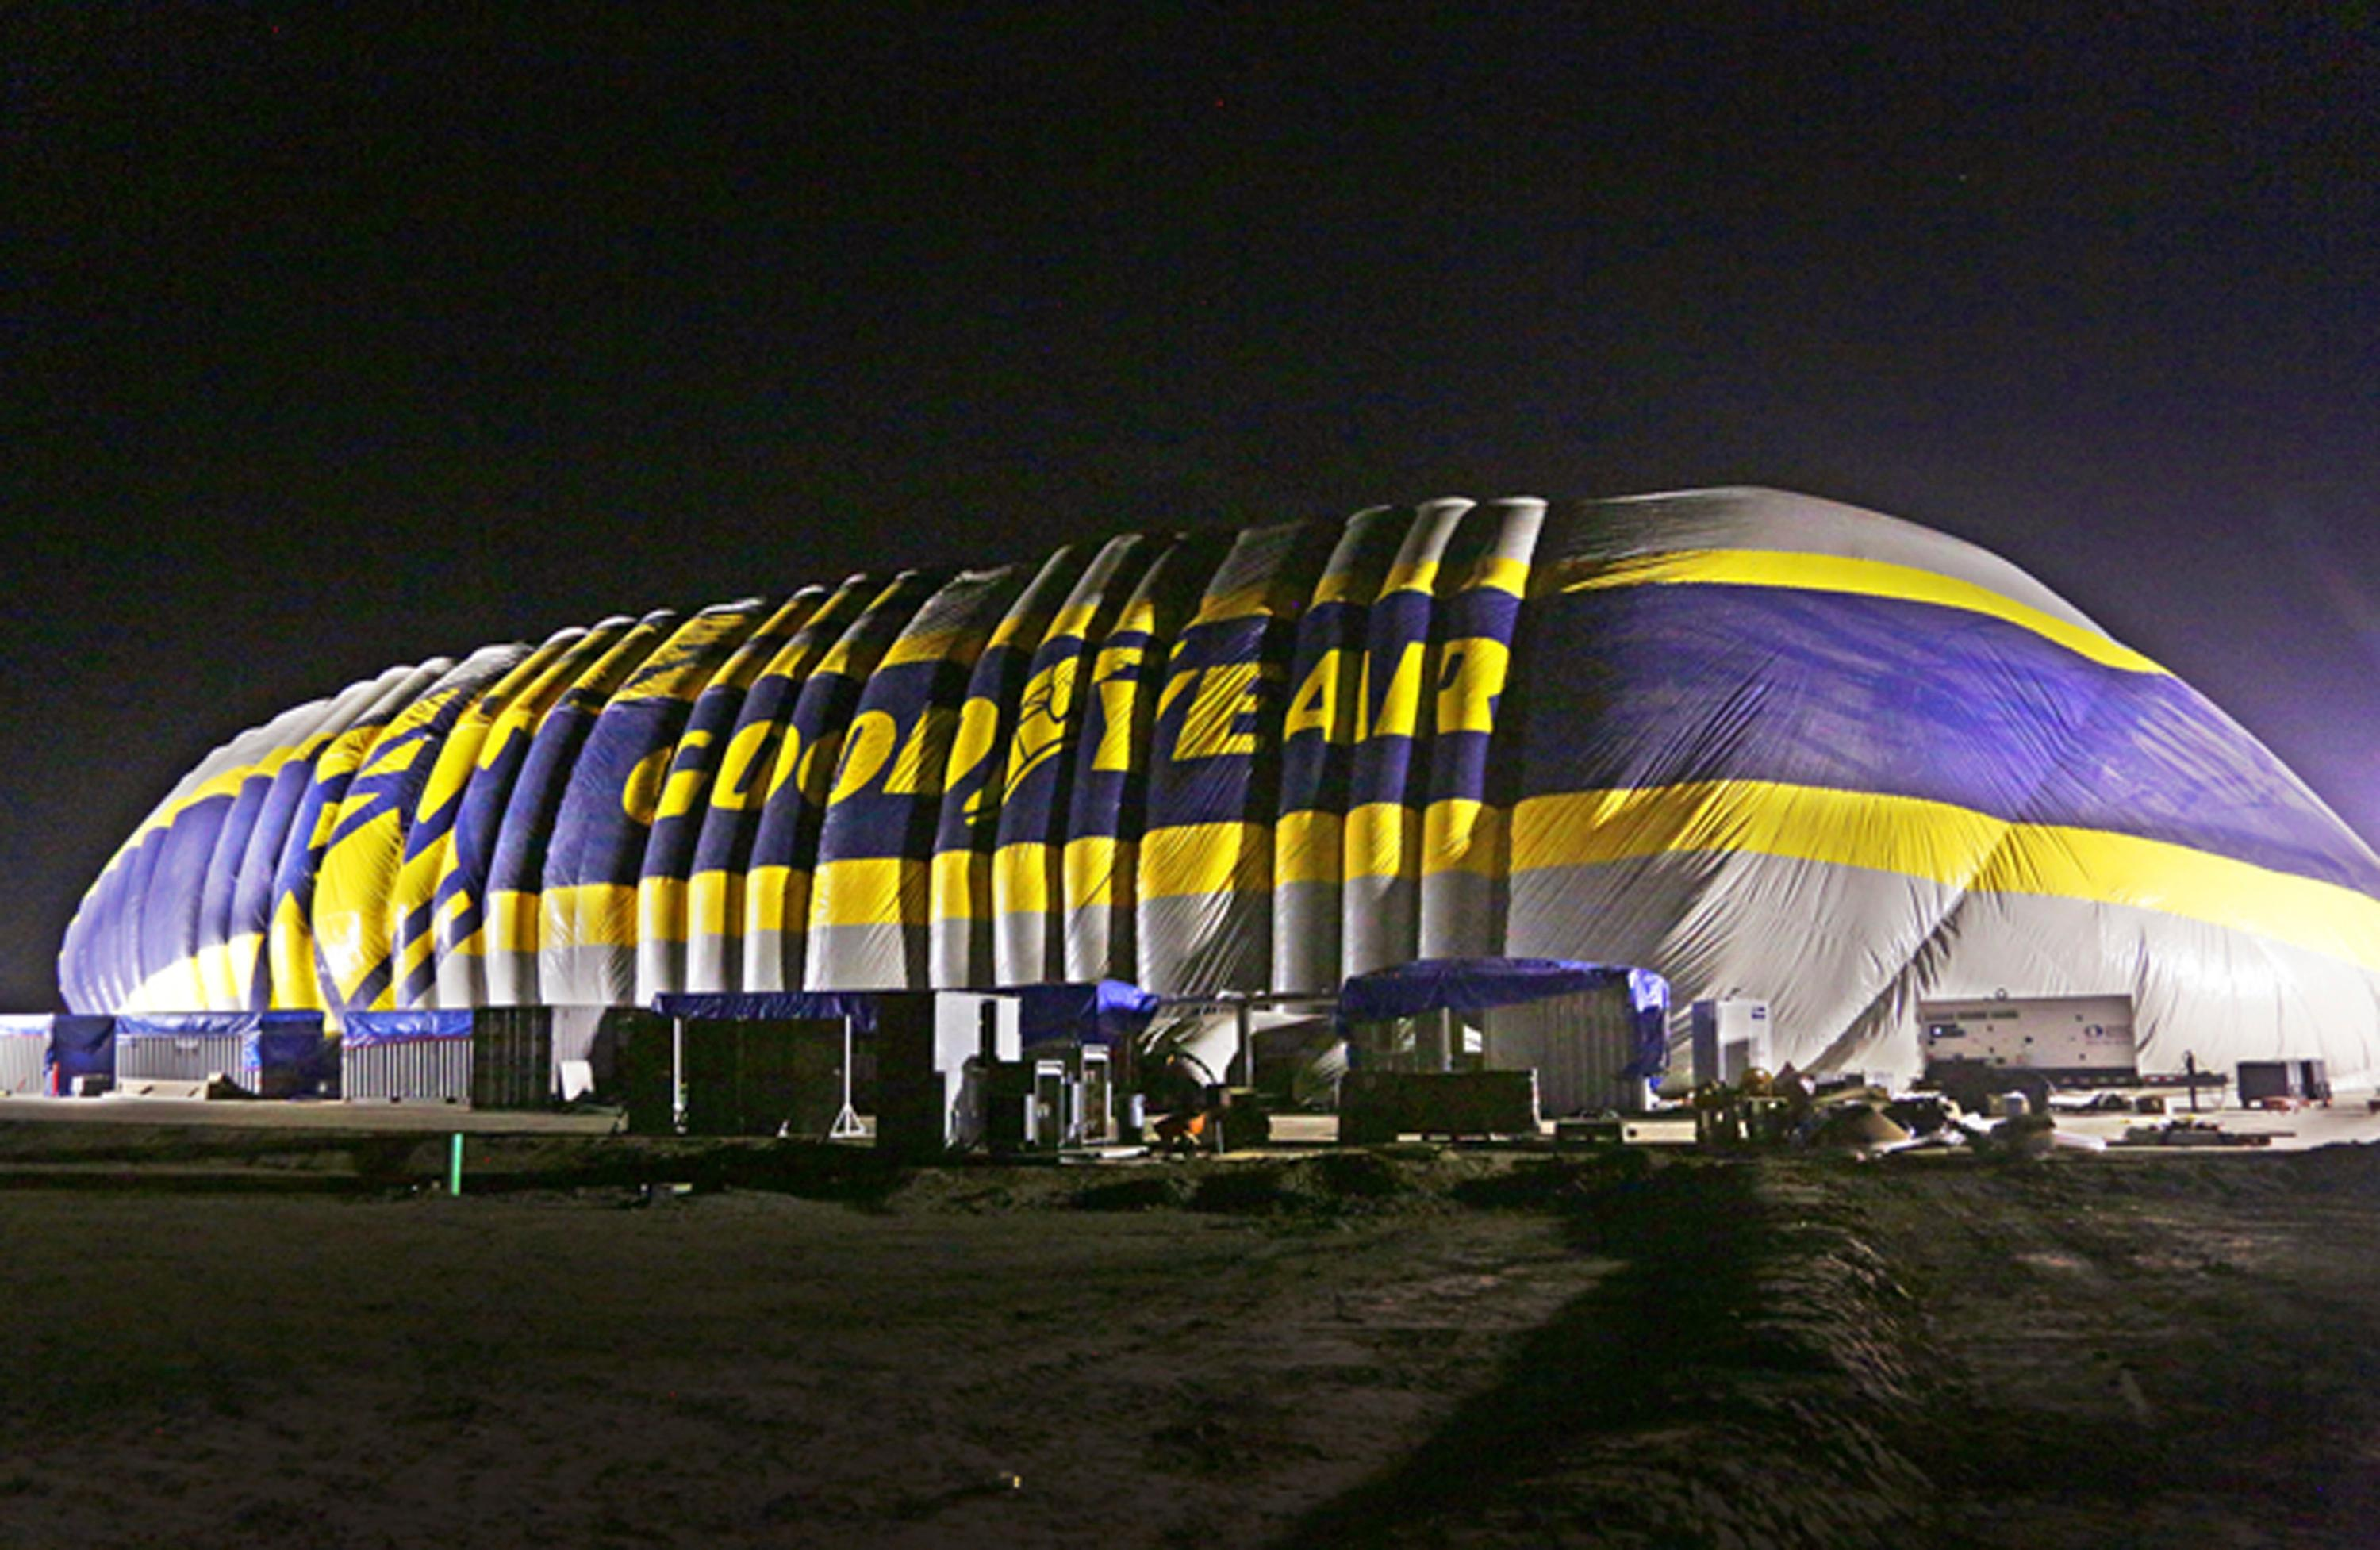 This photo provided by the Goodyear Tire & Rubber Co. shows the nearly-complete inflation of a giant inflatable hangar that will be the permanent home of one of the company's new semi-rigid airships,  Wednesday, Dec. 13, 2017 in Carson, Calif. The building standing nine stories tall and stretching the length of a football field went up early Wednesday along Interstate 405 south of Los Angeles. (Goodyear Tire & Rubber Co. via AP)